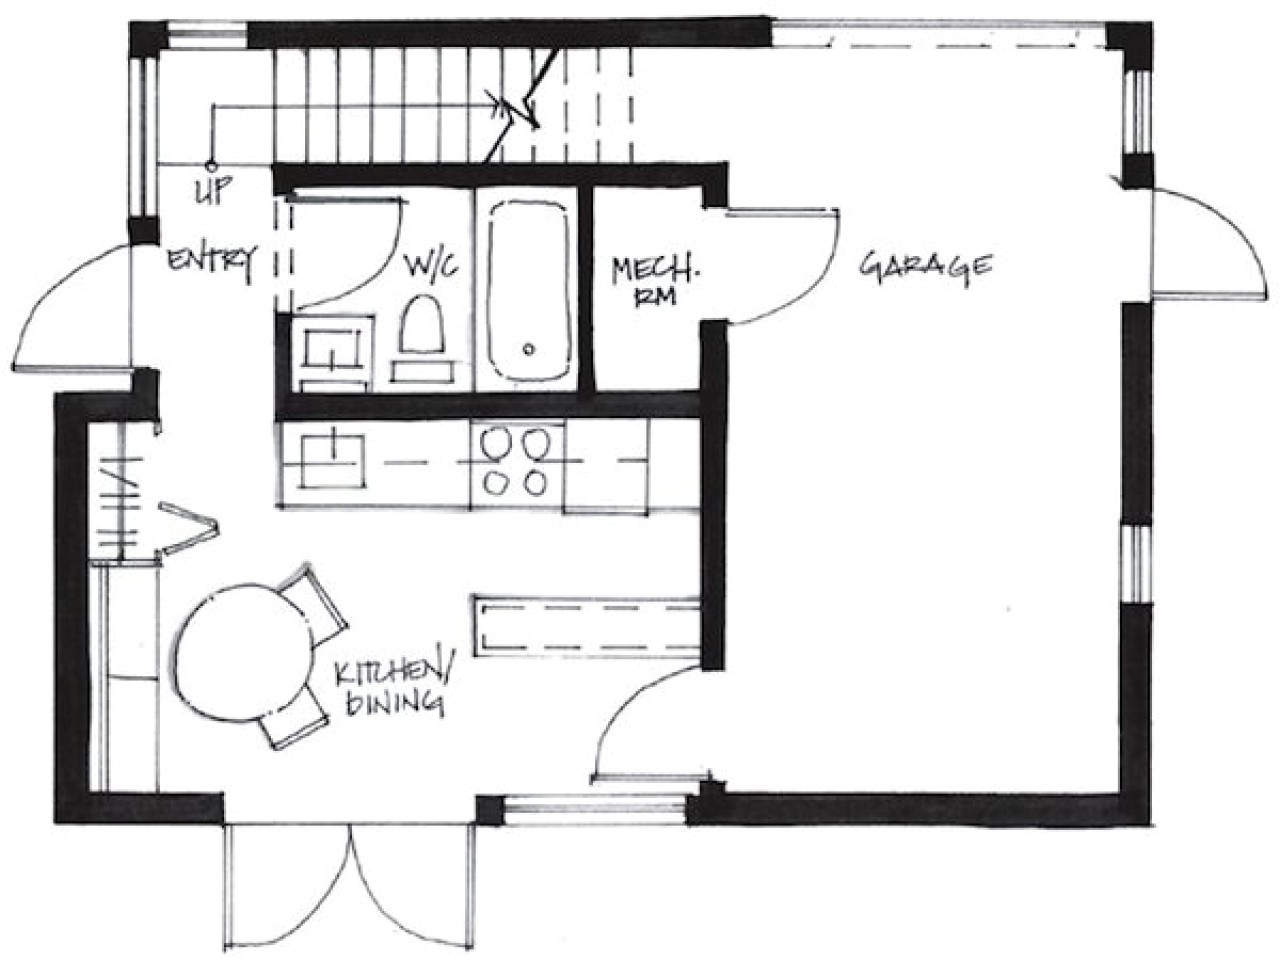 bda6624ba56c506e 500 sq ft cottage plans 500 sq ft tiny house floor plans